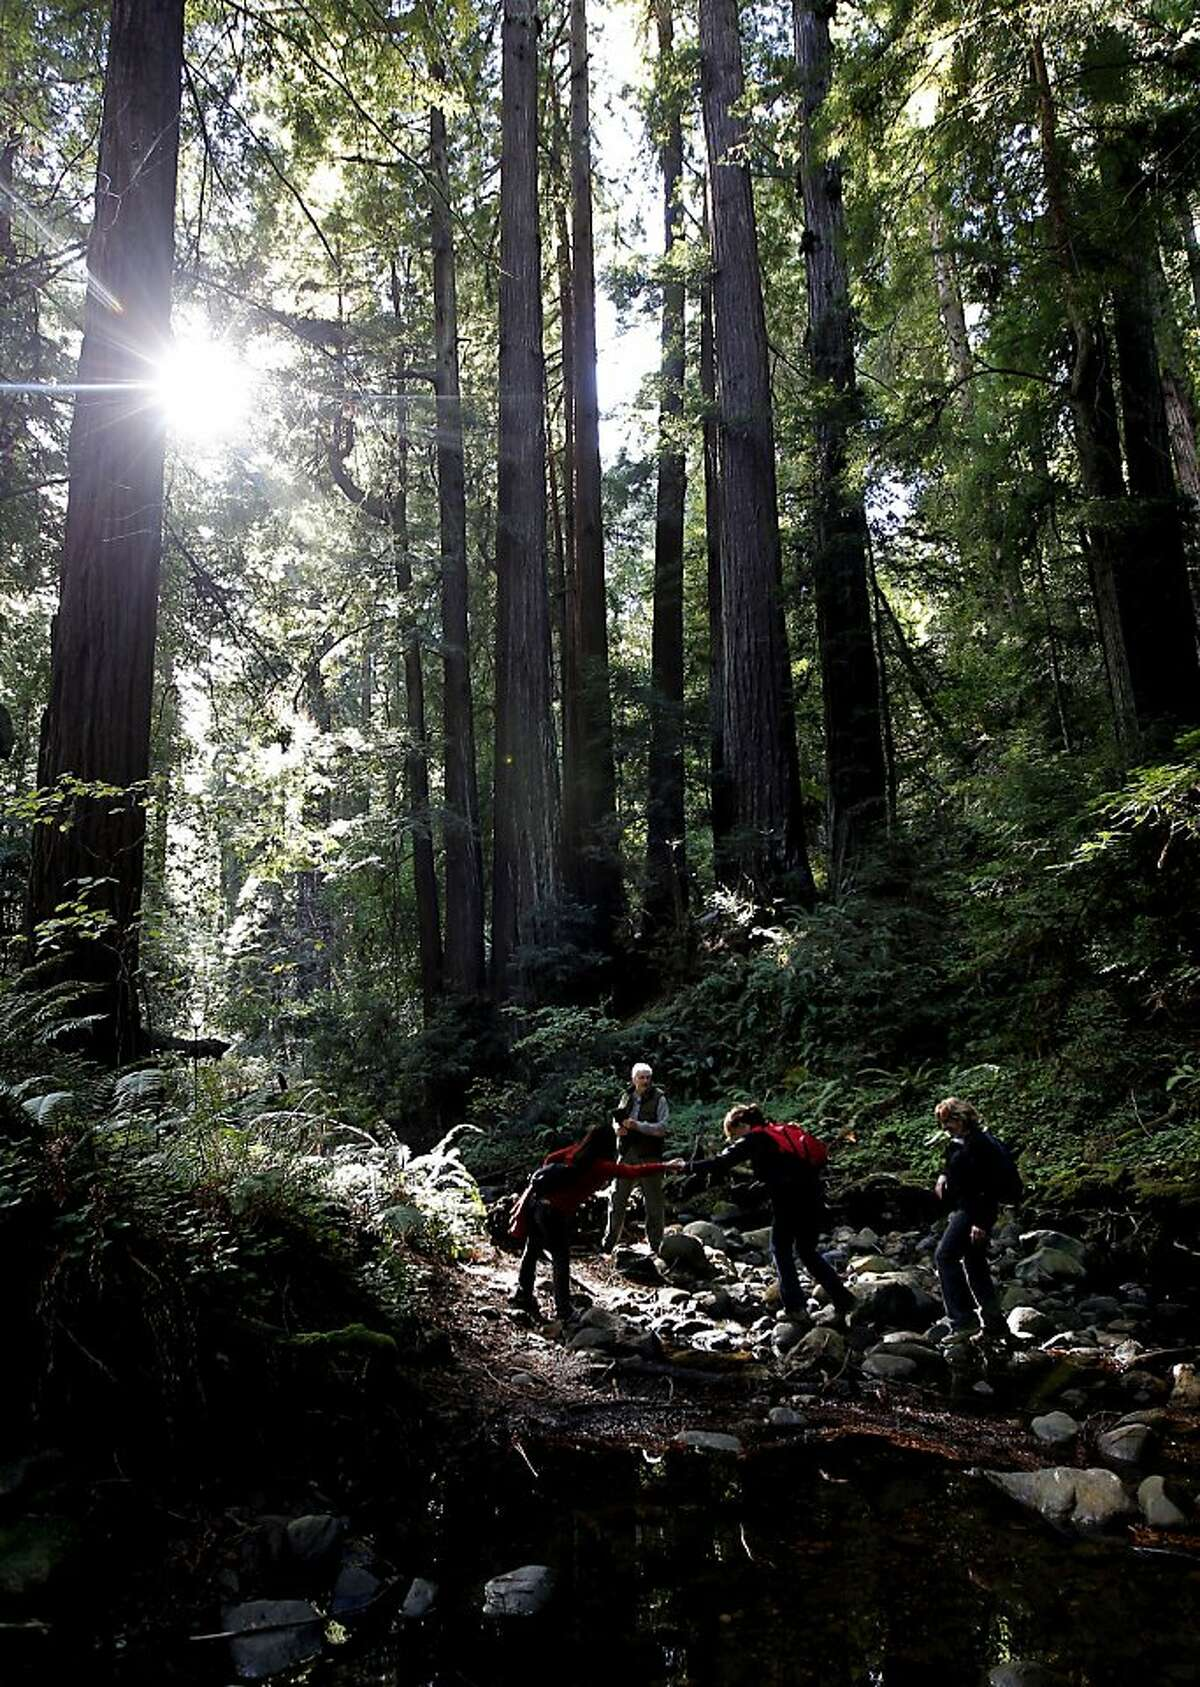 Save the Redwoods League members cross a stream on Wednesday Nov. 14, 2012, along the Peters Creek Loop trail, in La Honda, Calif. where the League has agreed to purchase a parcel near the Peters Creek old-growth forest and establish a conservation easement on Boulder Creek Forest, a total of 359 acres of redwood forests in the heart of the Santa Cruz Mountains. The problem is, they have to raise $2 million for a down payment on the $8 million total price by the end of the year.